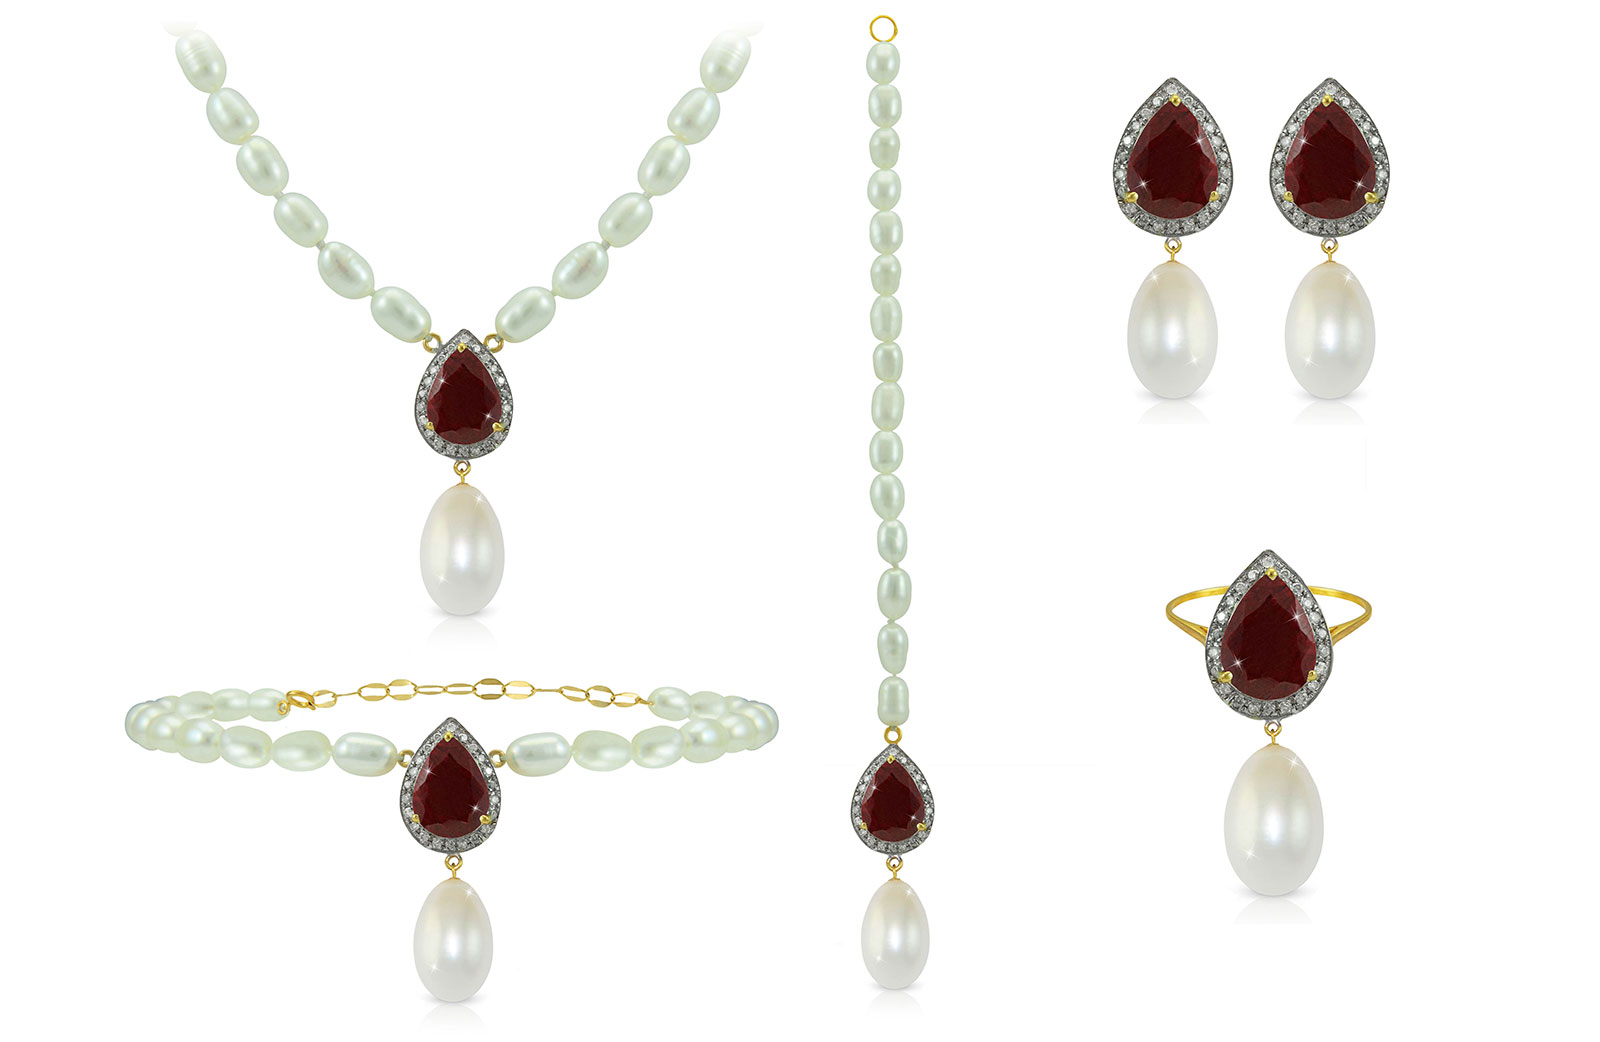 Vera Perla 18K Gold 0.72ct Diamonds, Royal Indian Ruby and 13mm Pearl  5 pcs set